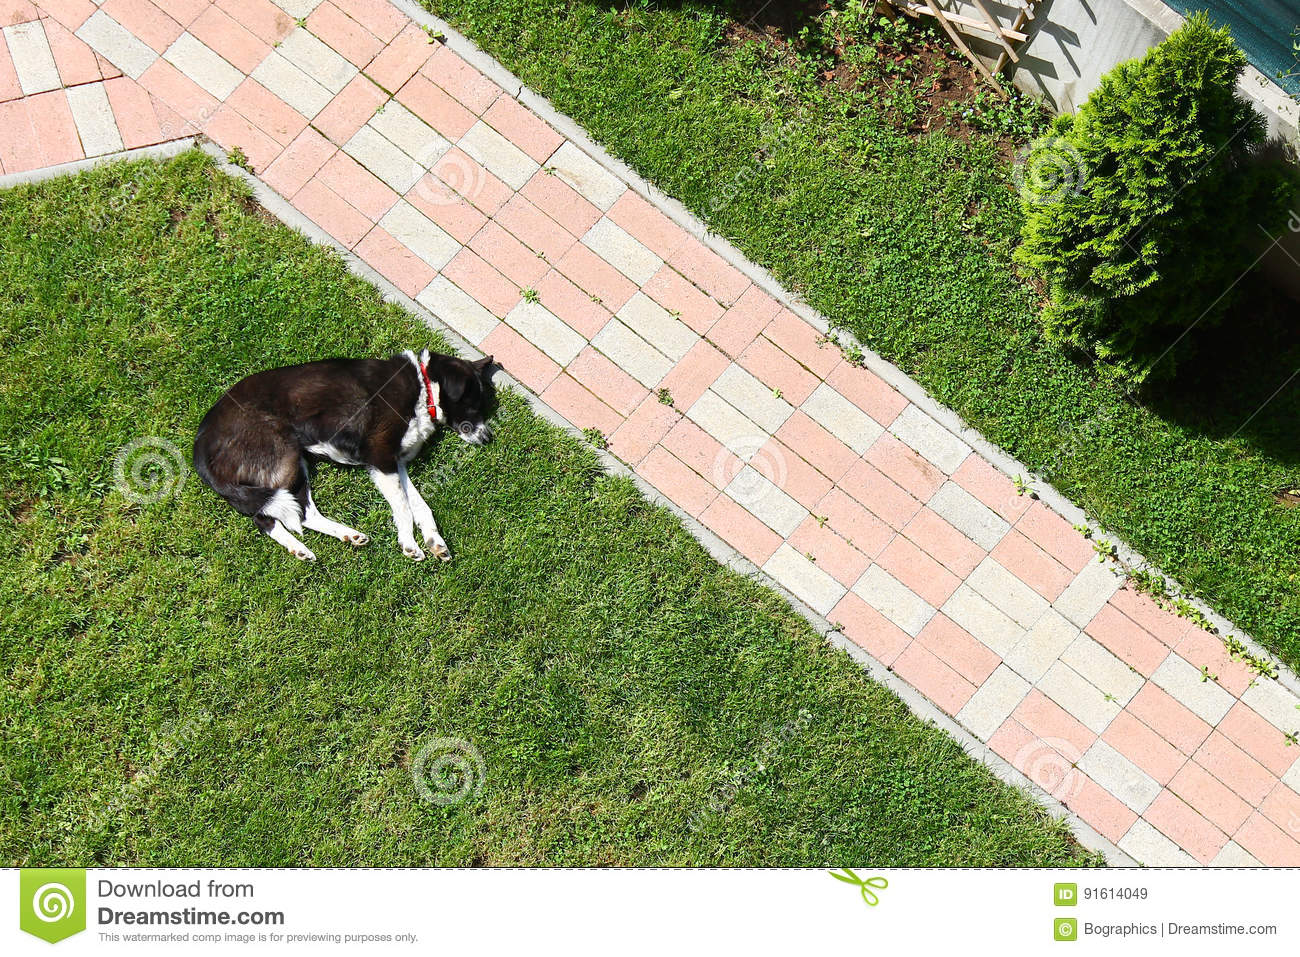 Download Lazy Dog Sleeping On Lawn Yard Near Alley Stock Image - Image of green, sleeping: 91614049